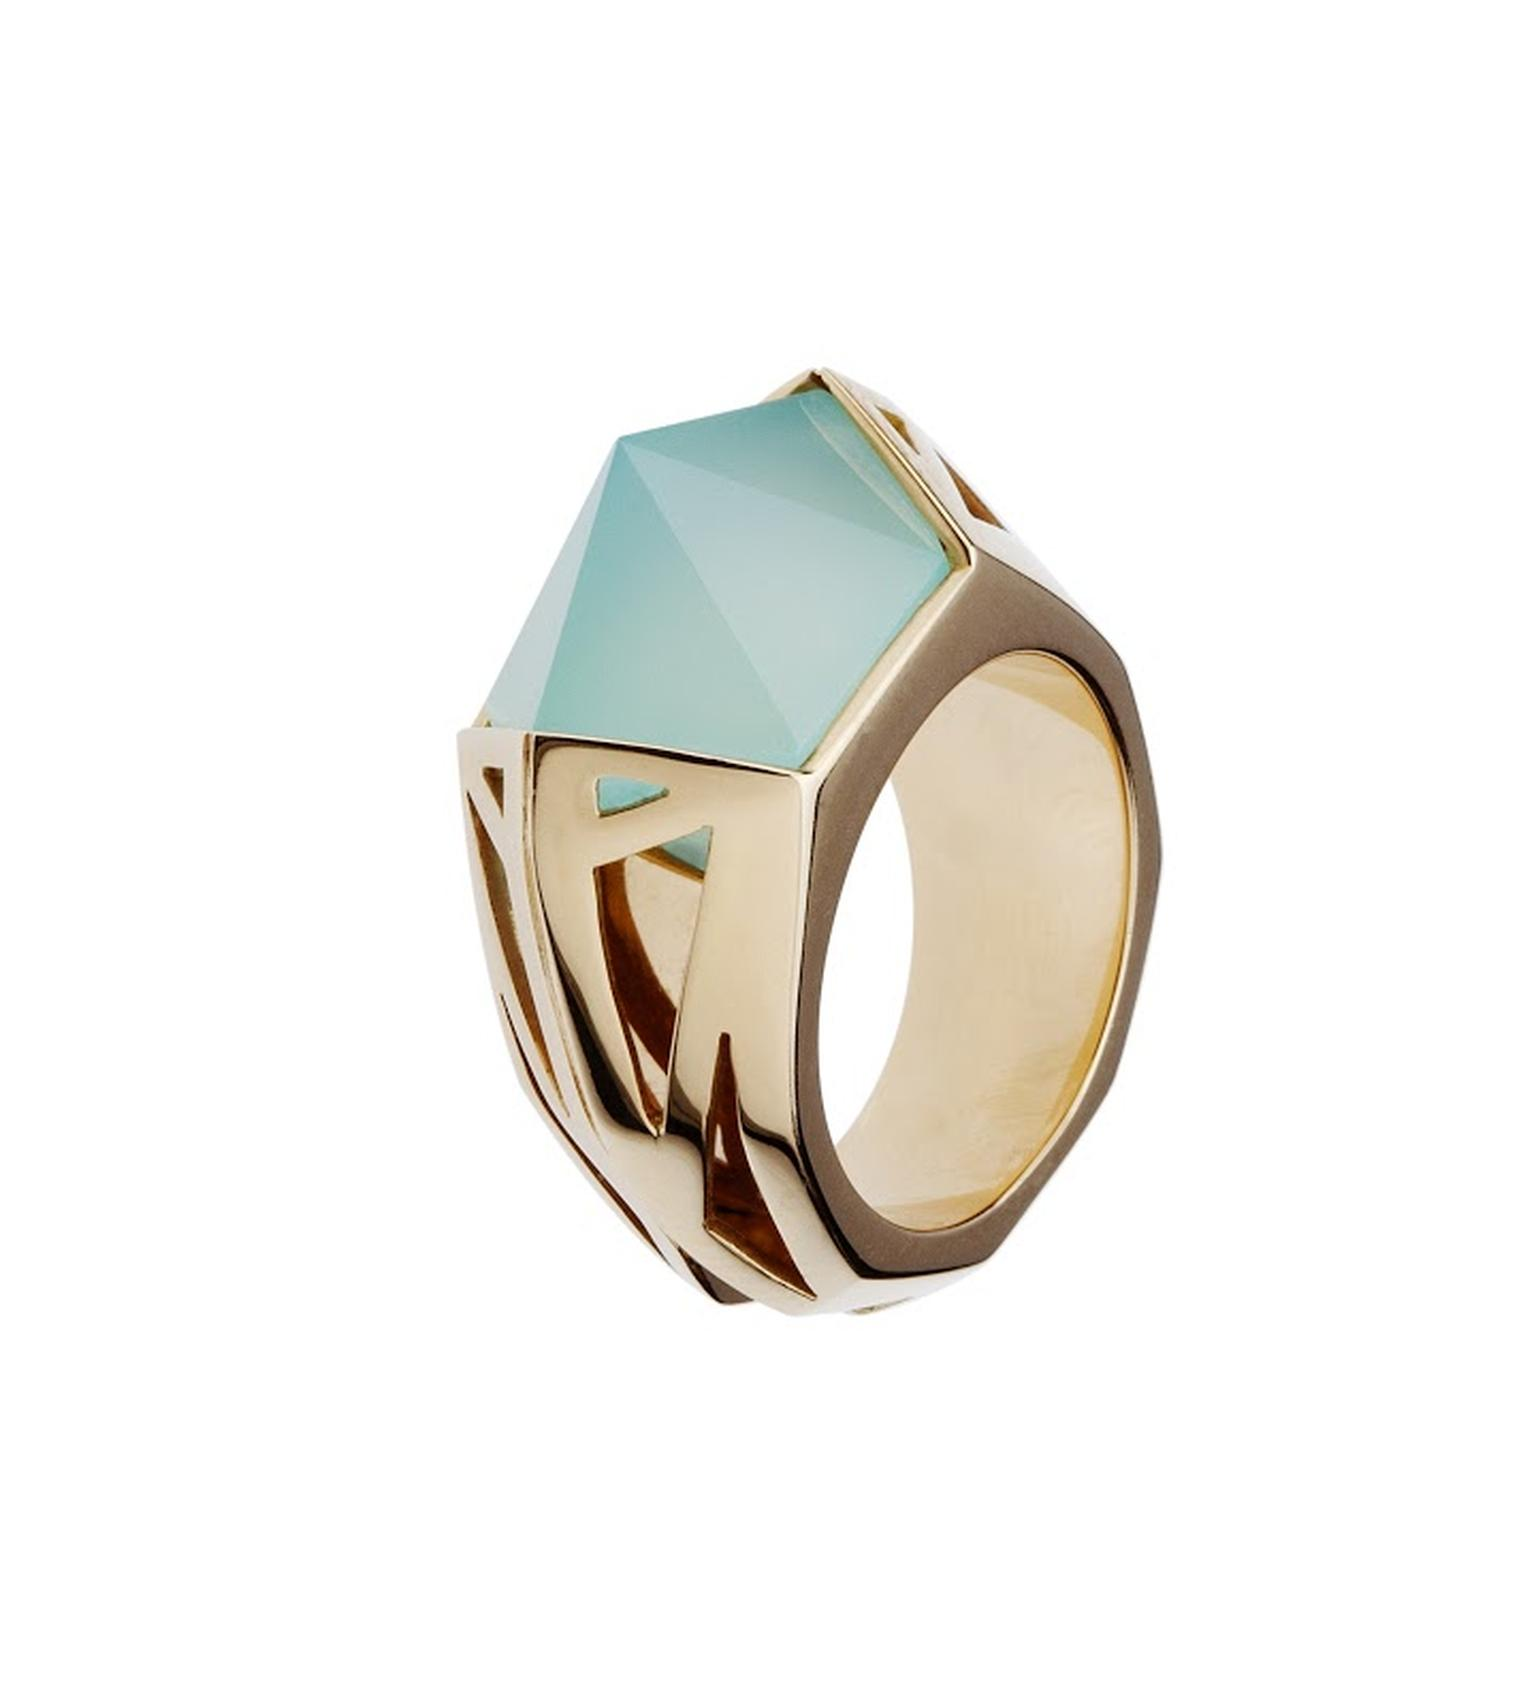 Mimata pink gold and chalcedony ring, from the Moon collection.